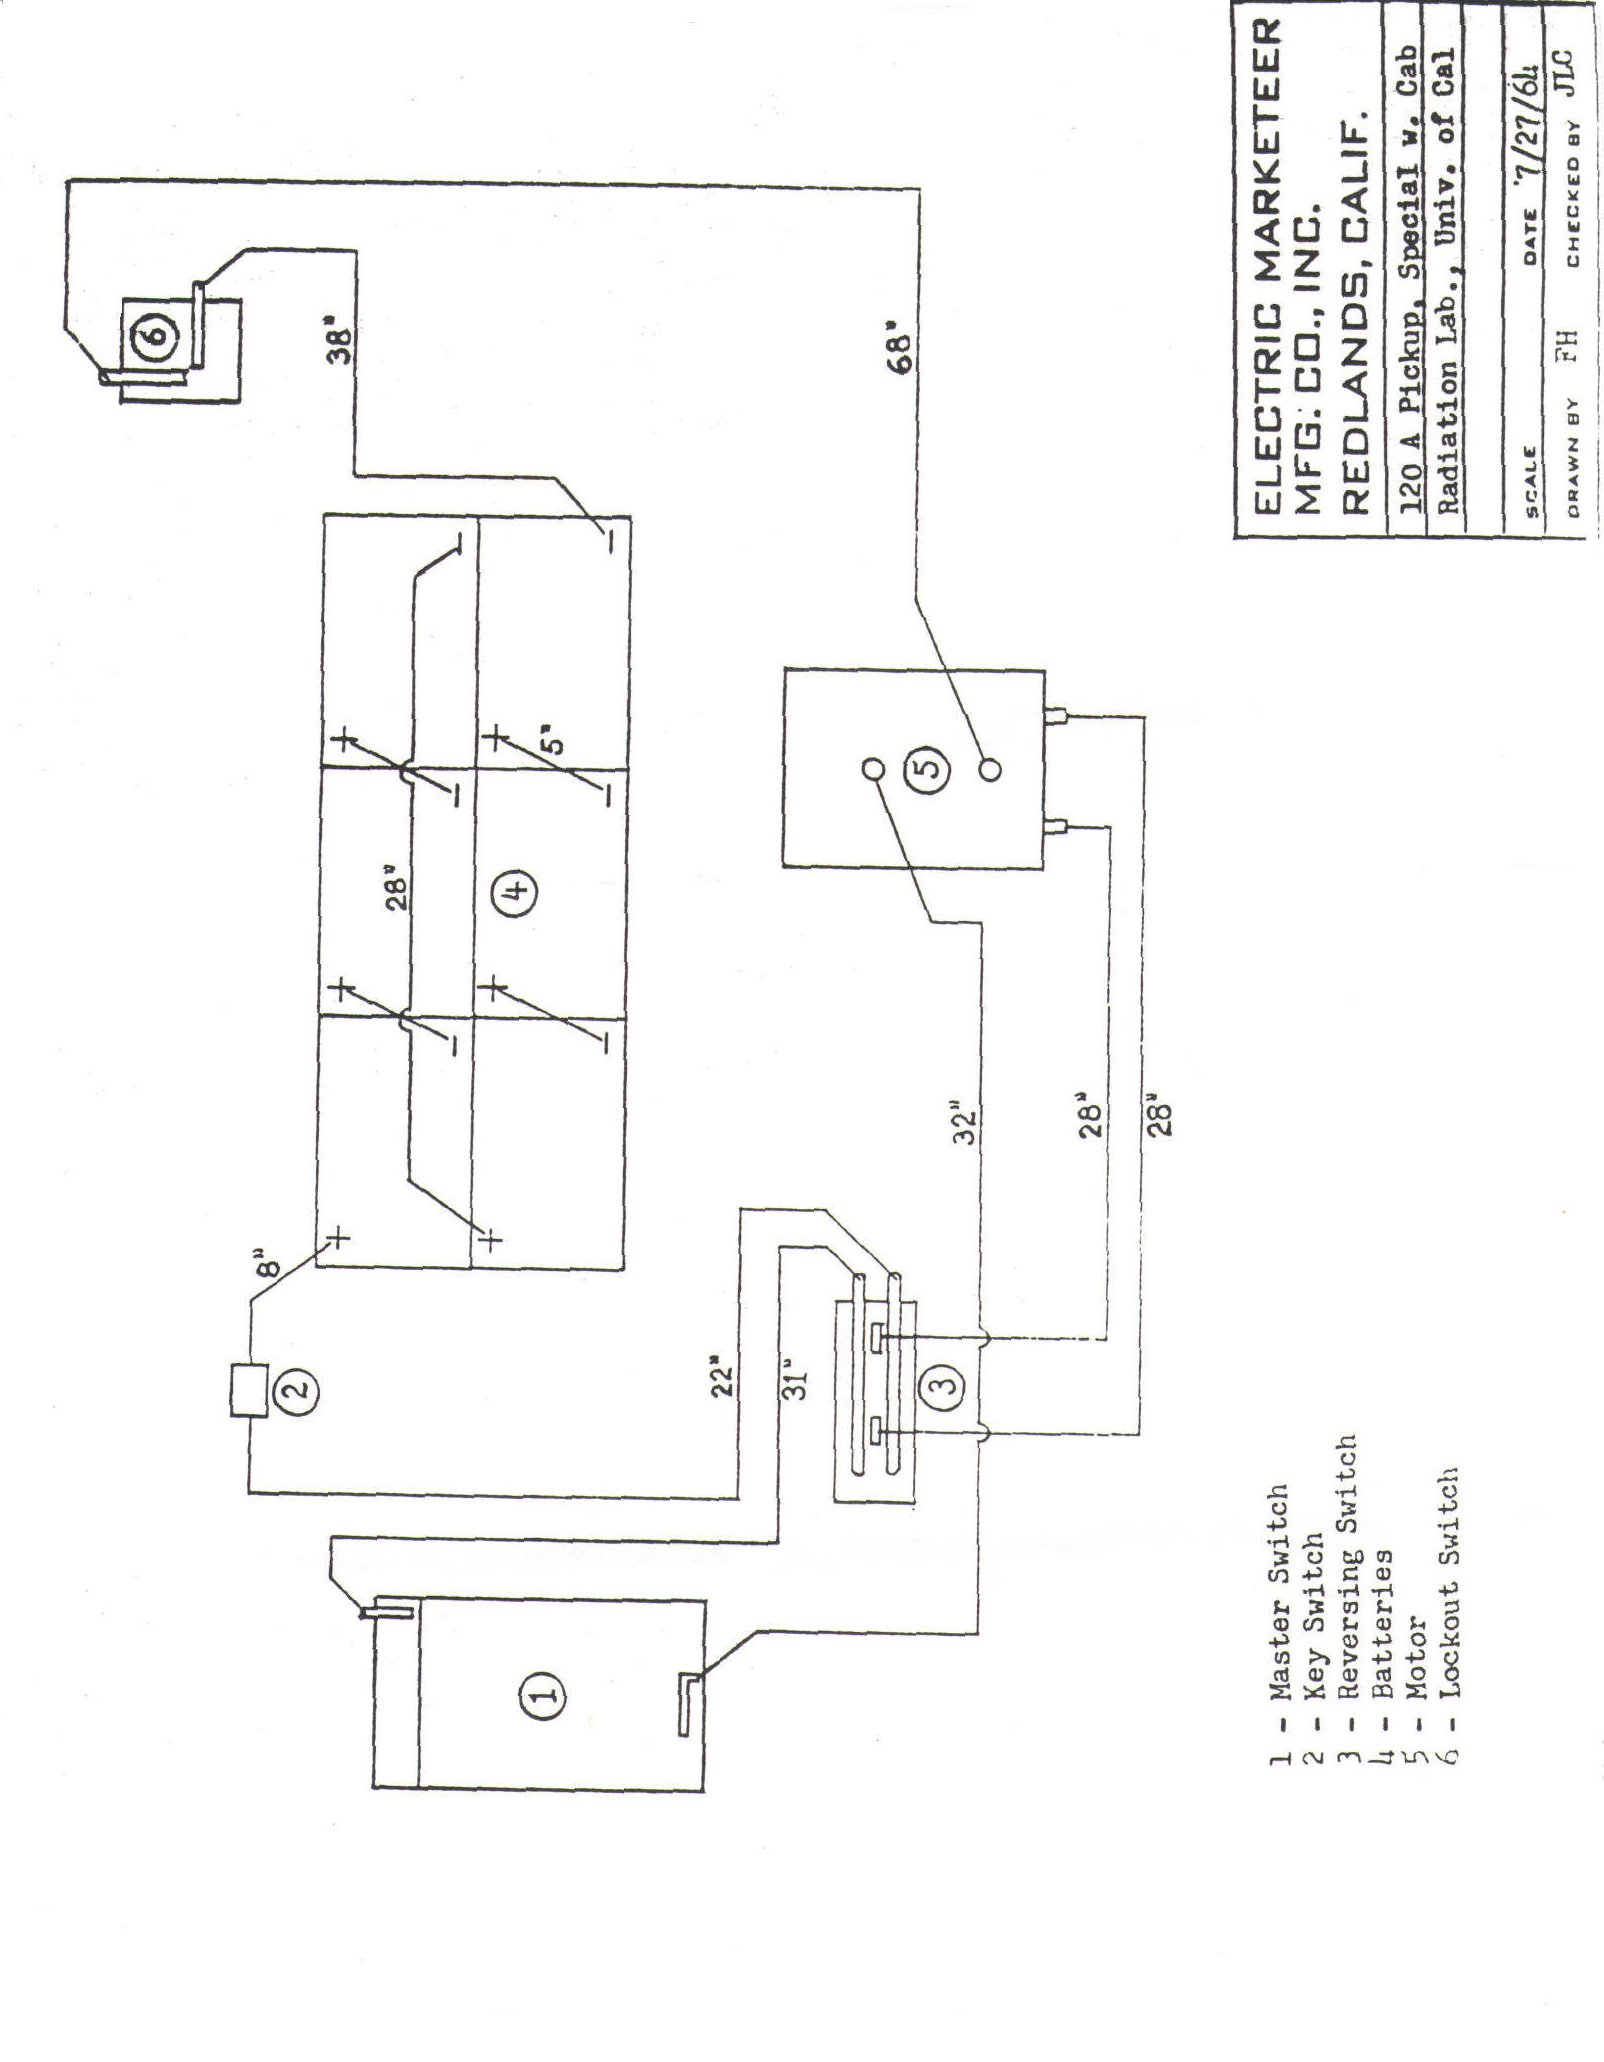 hight resolution of melex golf cart wiring diagram 9 hp wiring diagram golf cart electrical diagram melex 212 golf